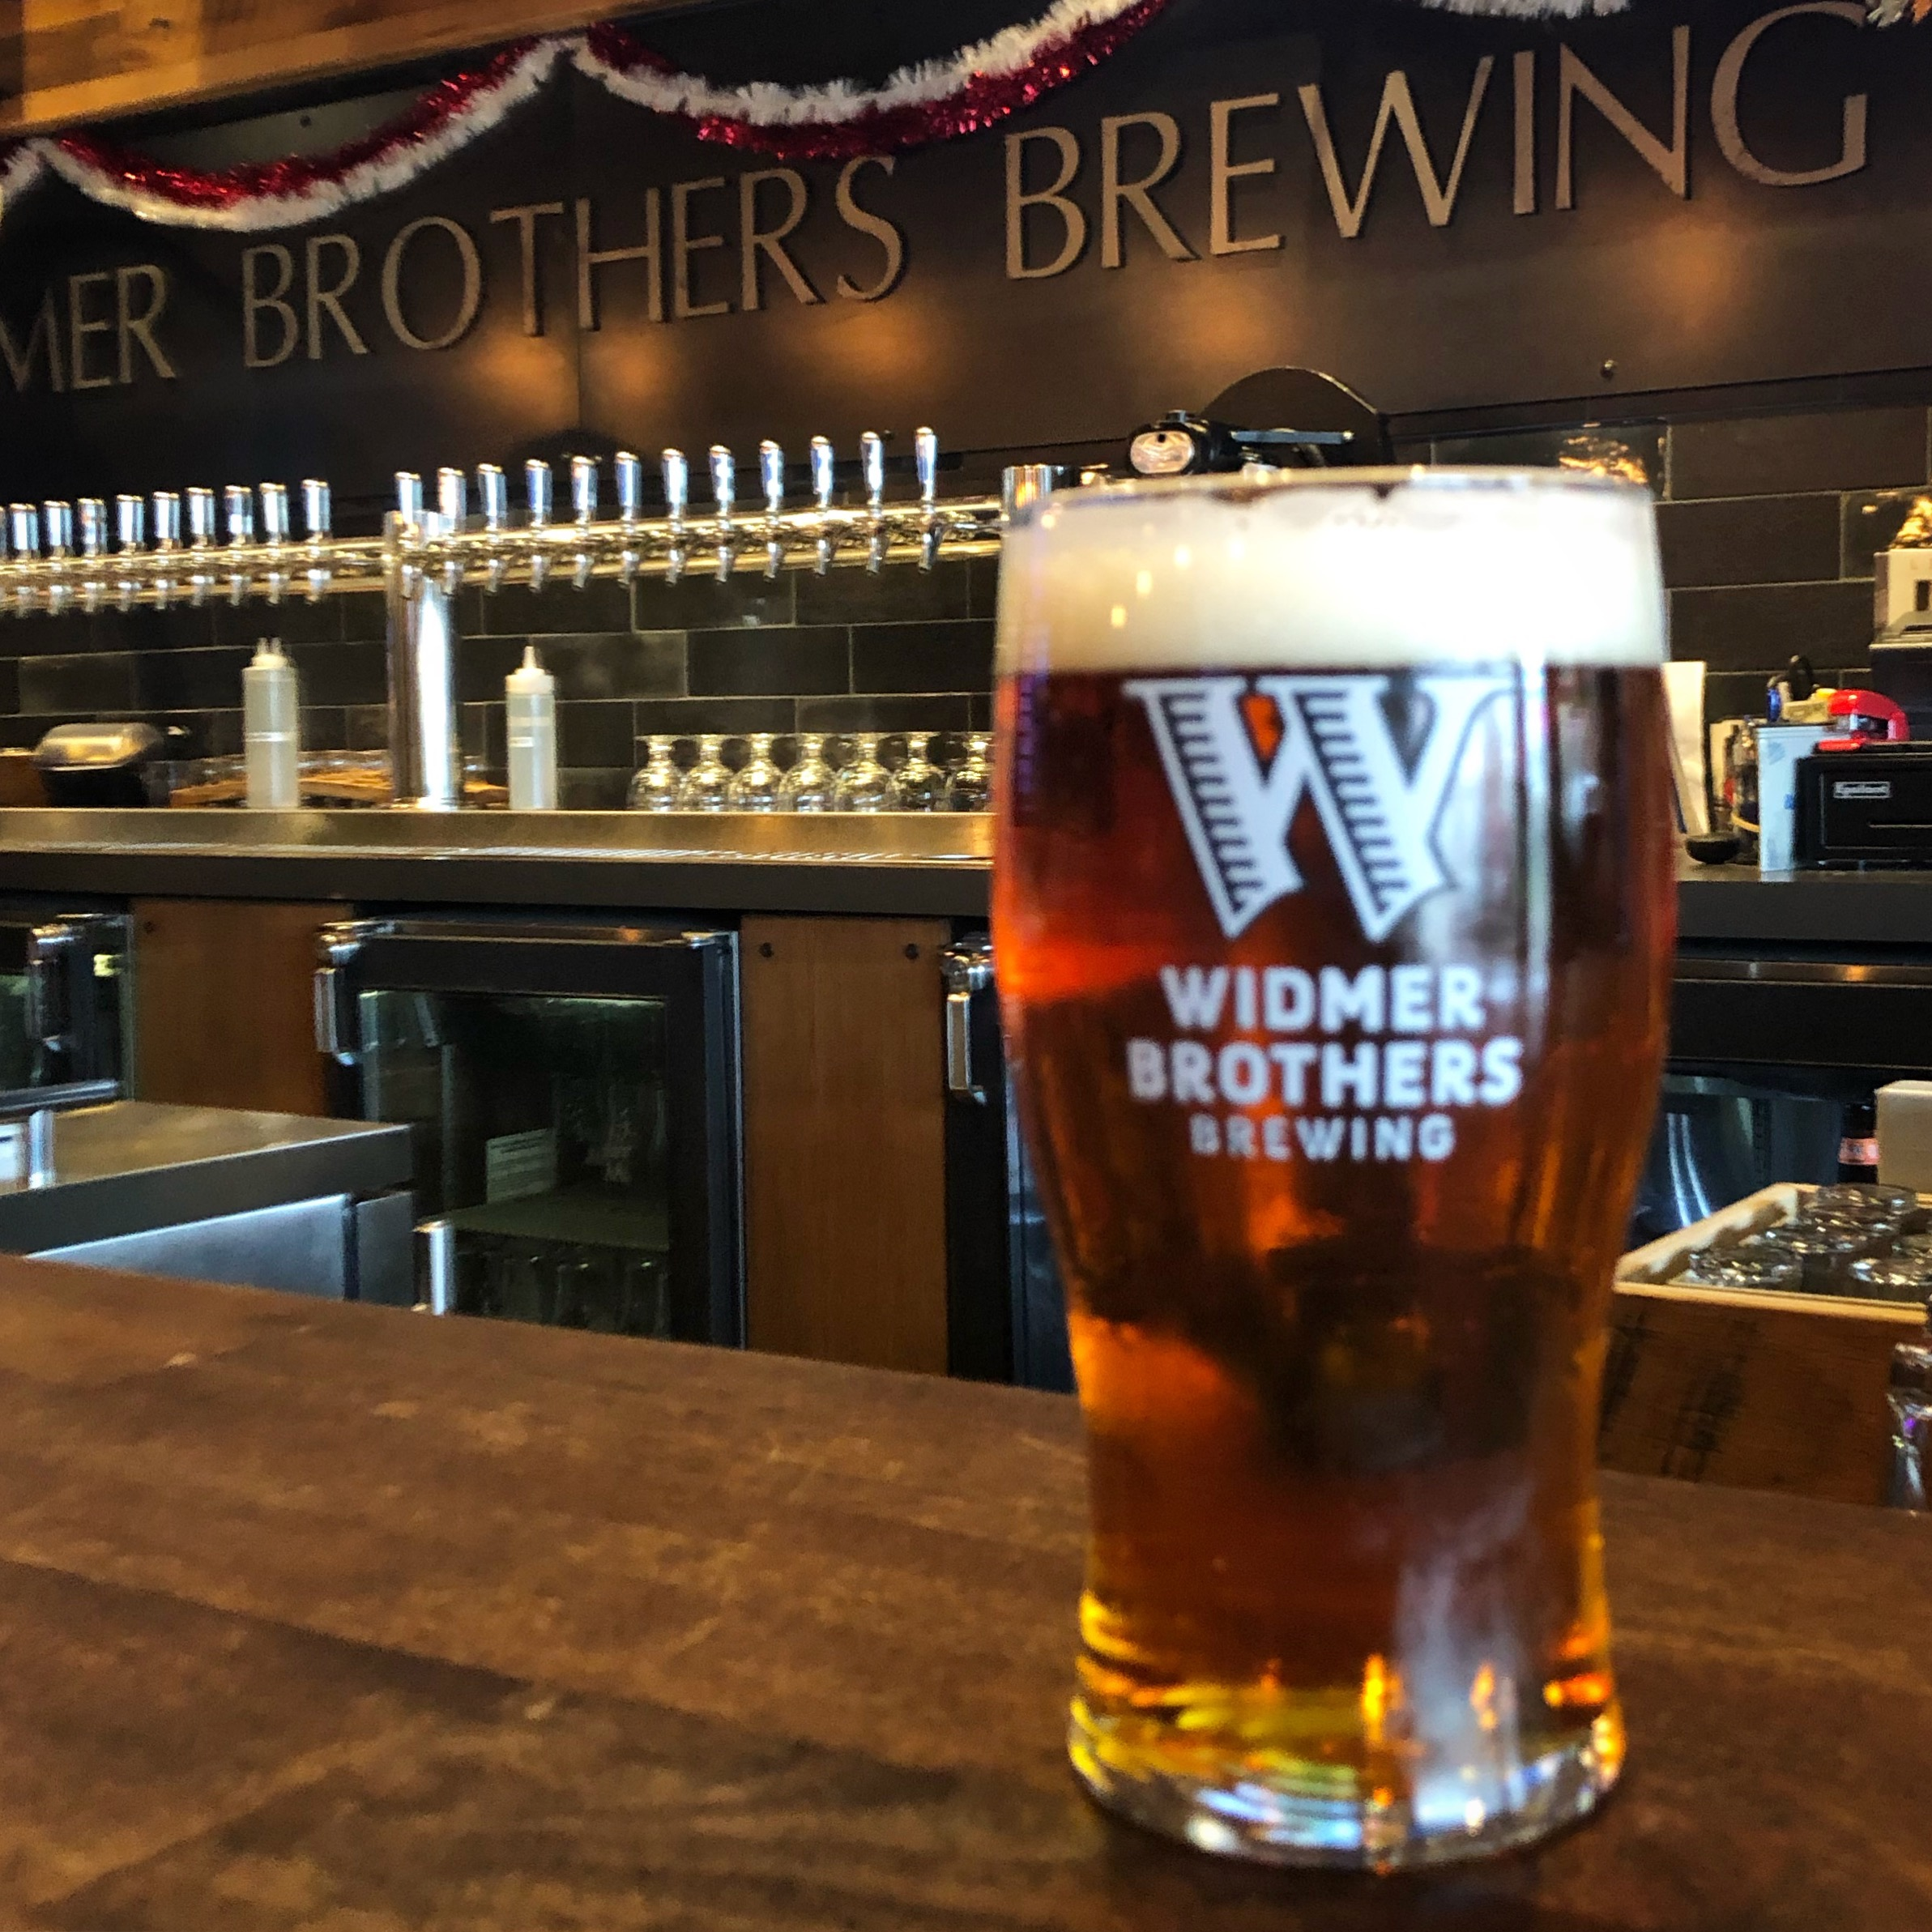 Widmer Brothers Brewing Resilience IPA poured at its release on Saturday, December 15, 2018.